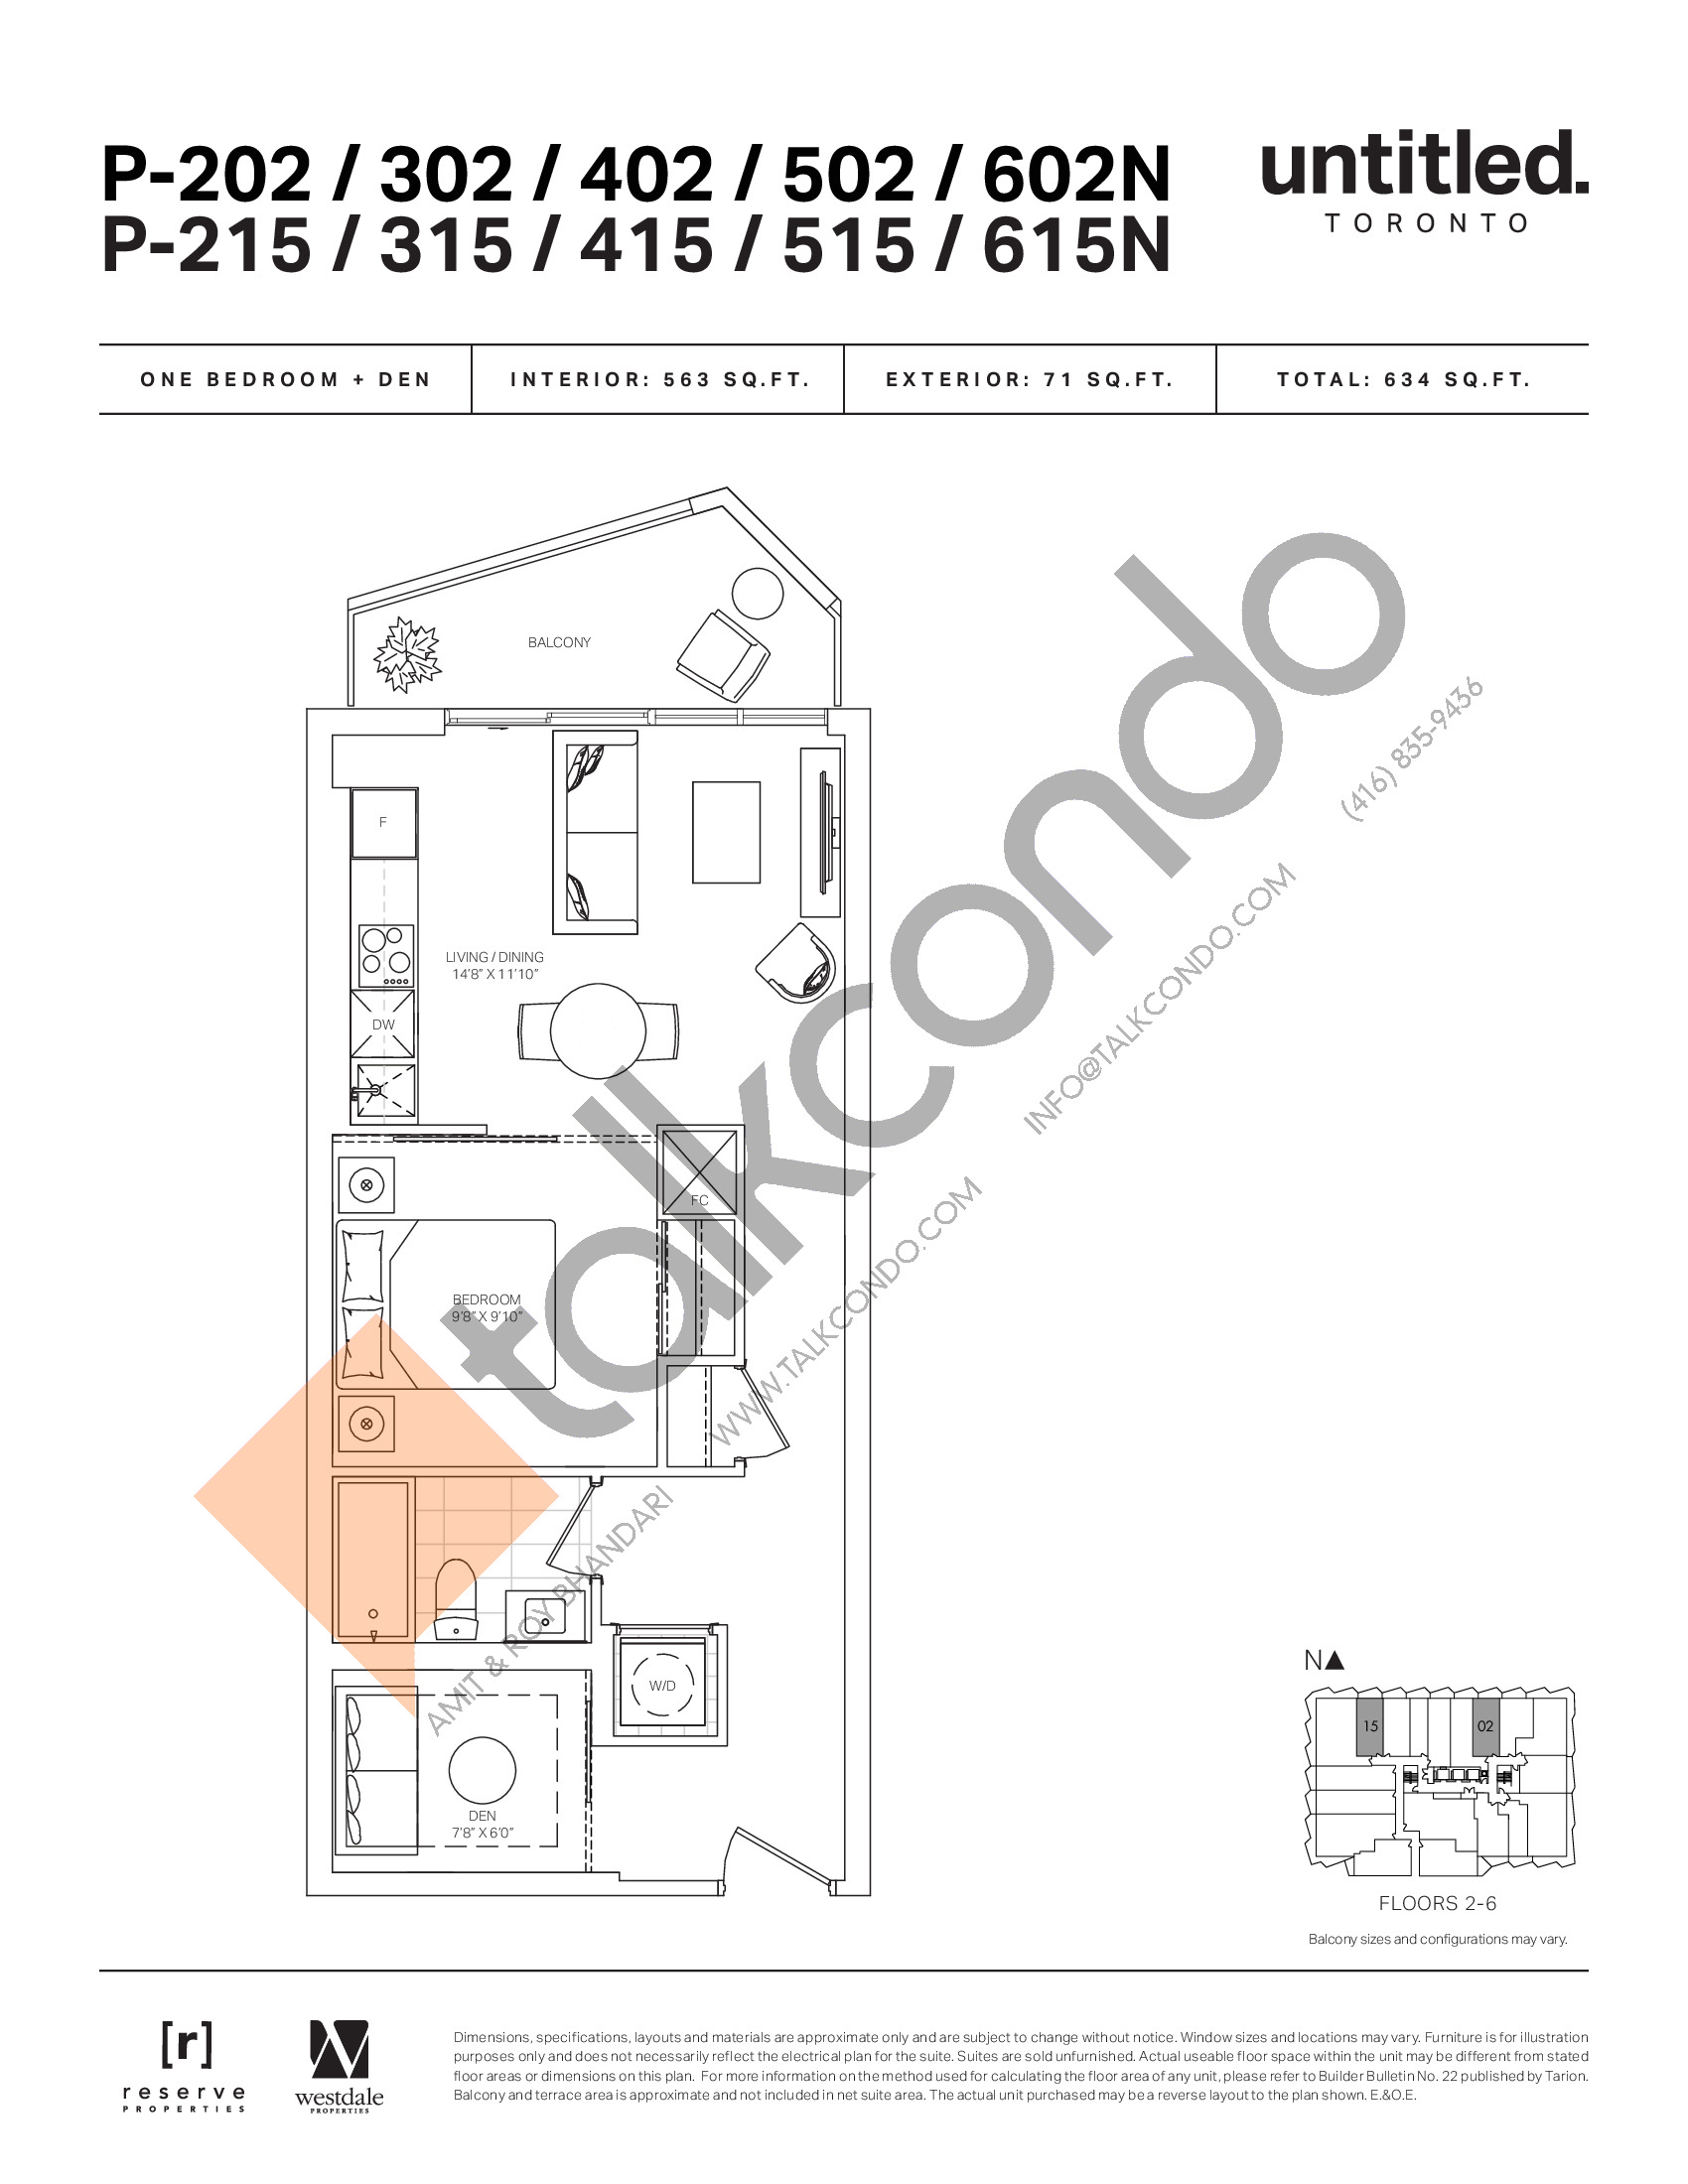 P-202/302/402/502/602N P-215/315/415/515/615N Floor Plan at Untitled North Tower Condos - 563 sq.ft